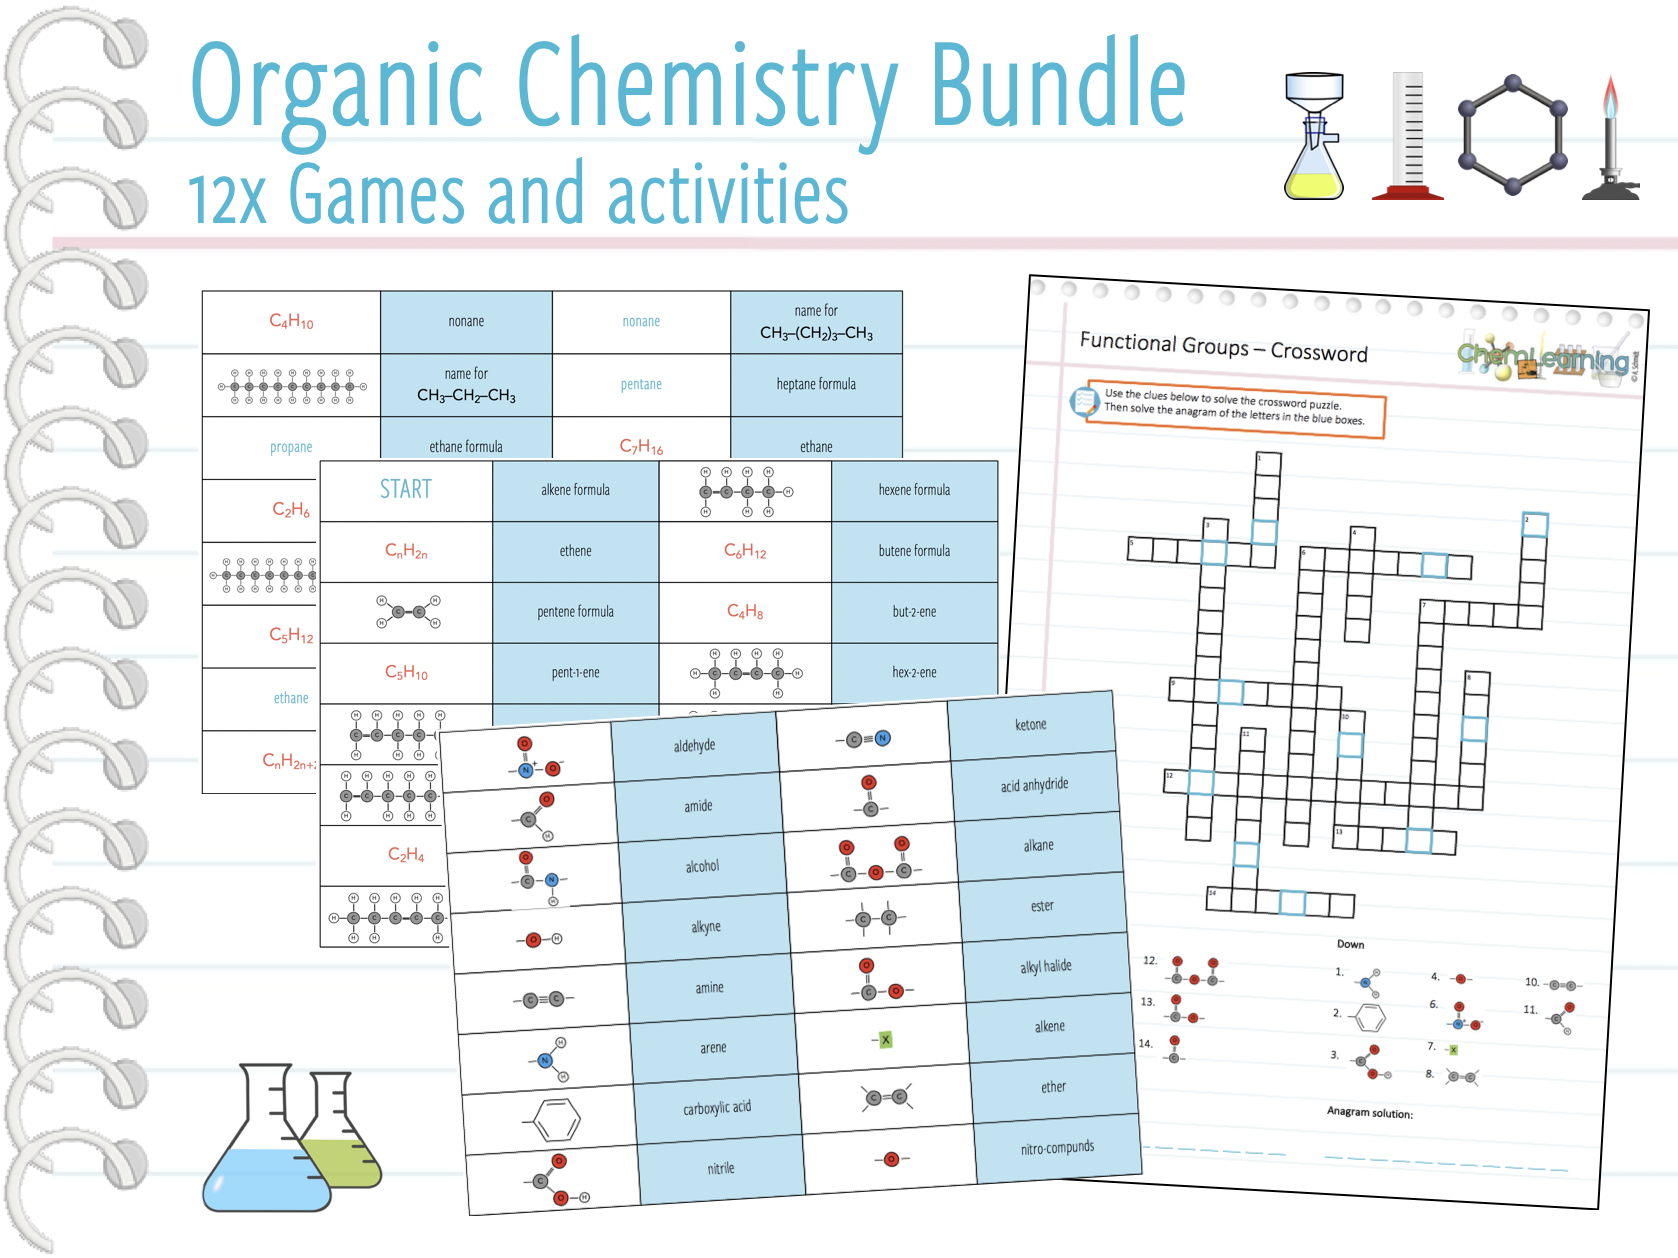 Organic Chemistry - 12x Games and activities (KS5)